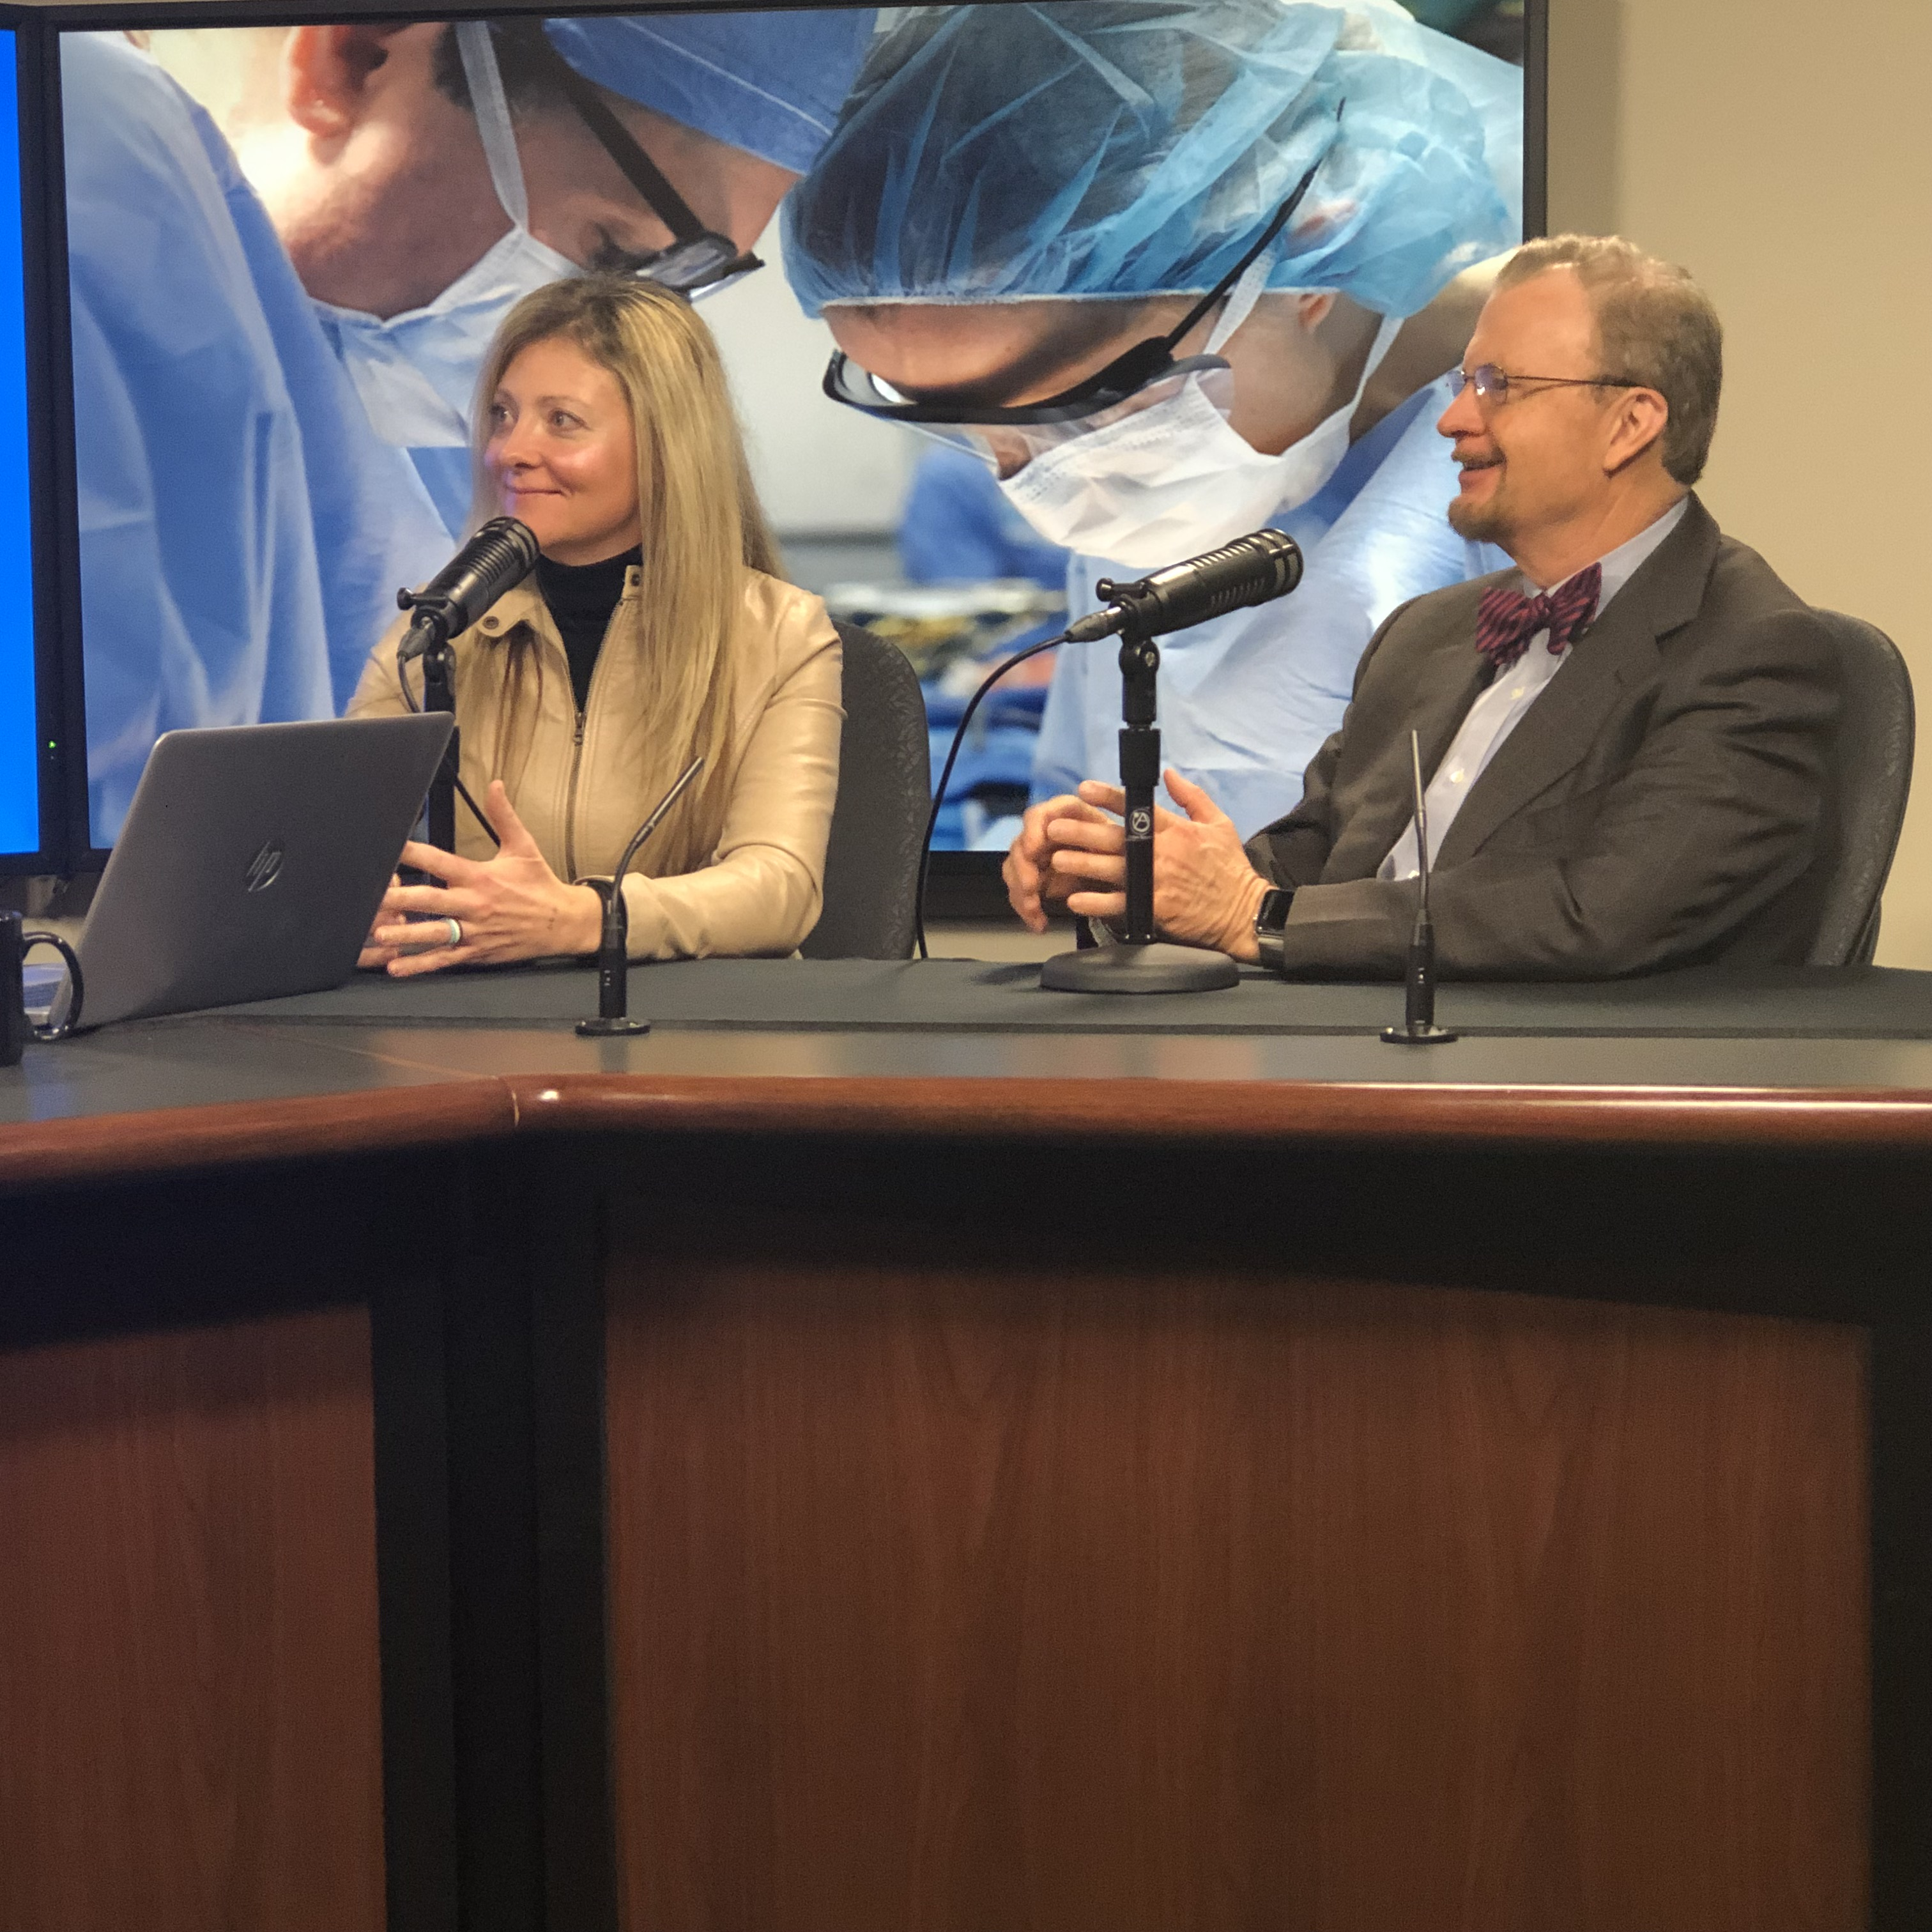 Mollie Luhman and Dr. Mark Stegall being interviewed on Mayo Clinic Radio